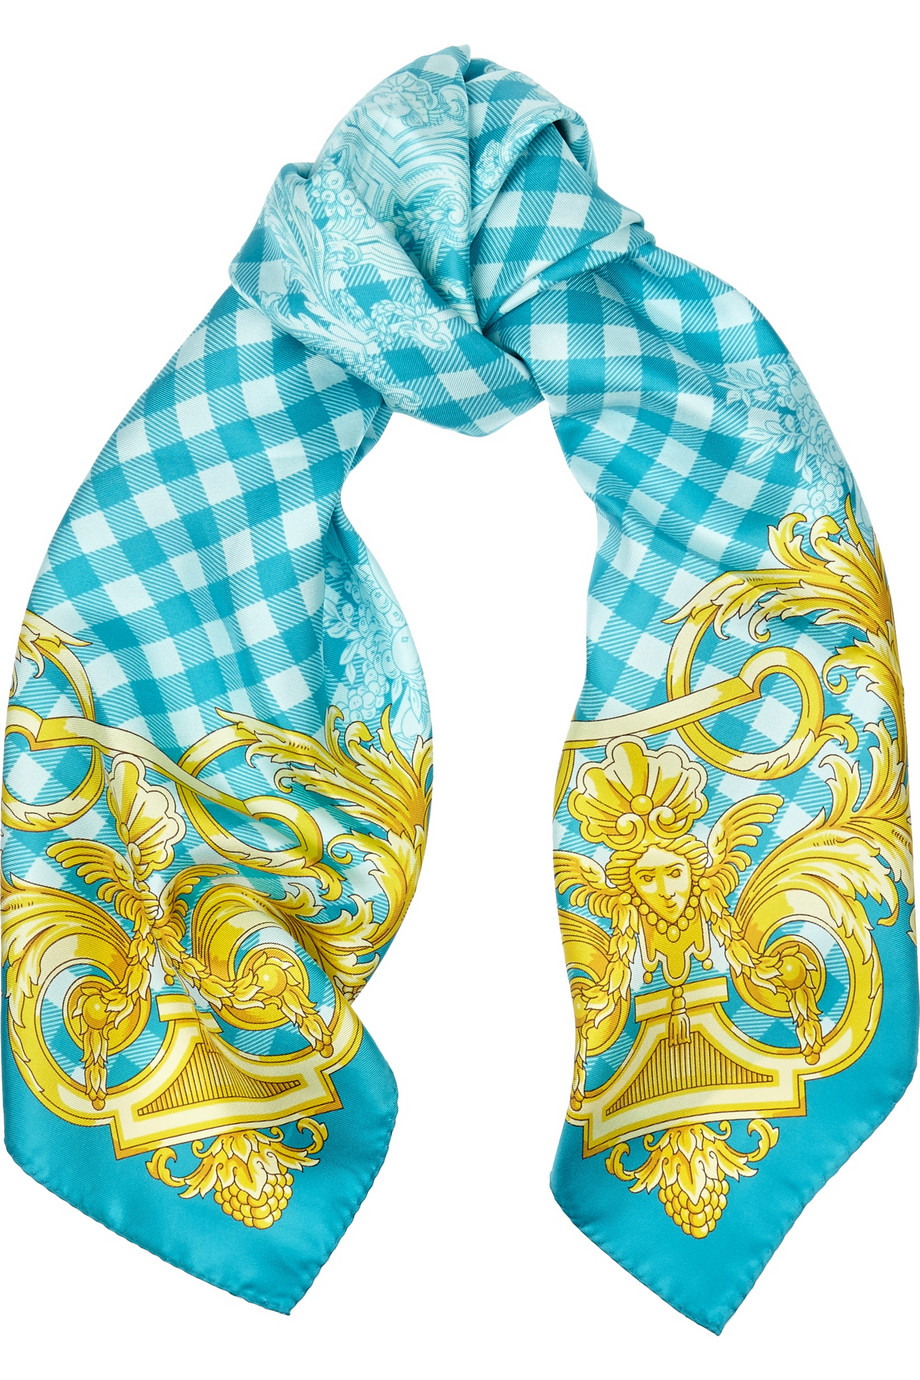 Versace Silk Printed Scarf  $128 marked down from $320